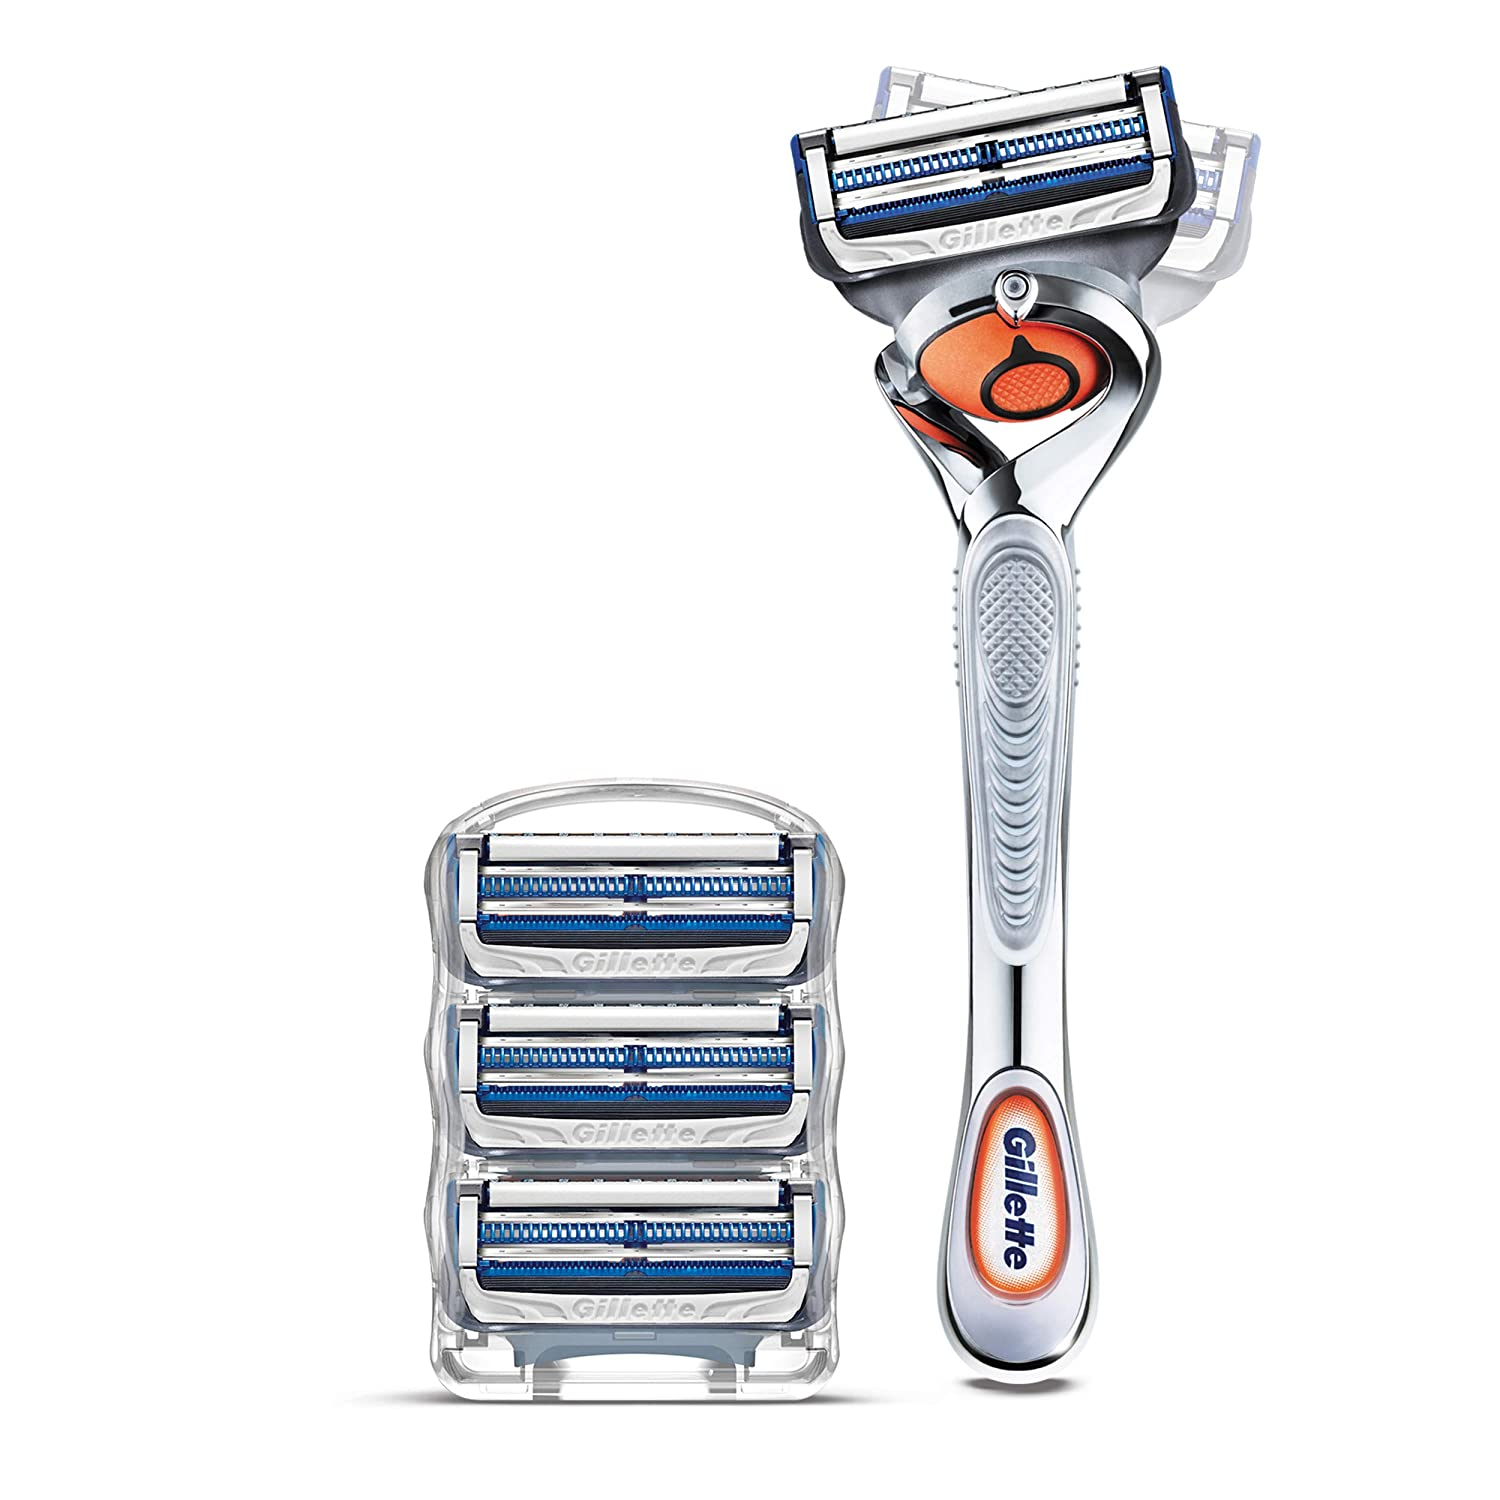 Gillette SkinGuard Men's Razor Flex Handle + 4 Blade Refills